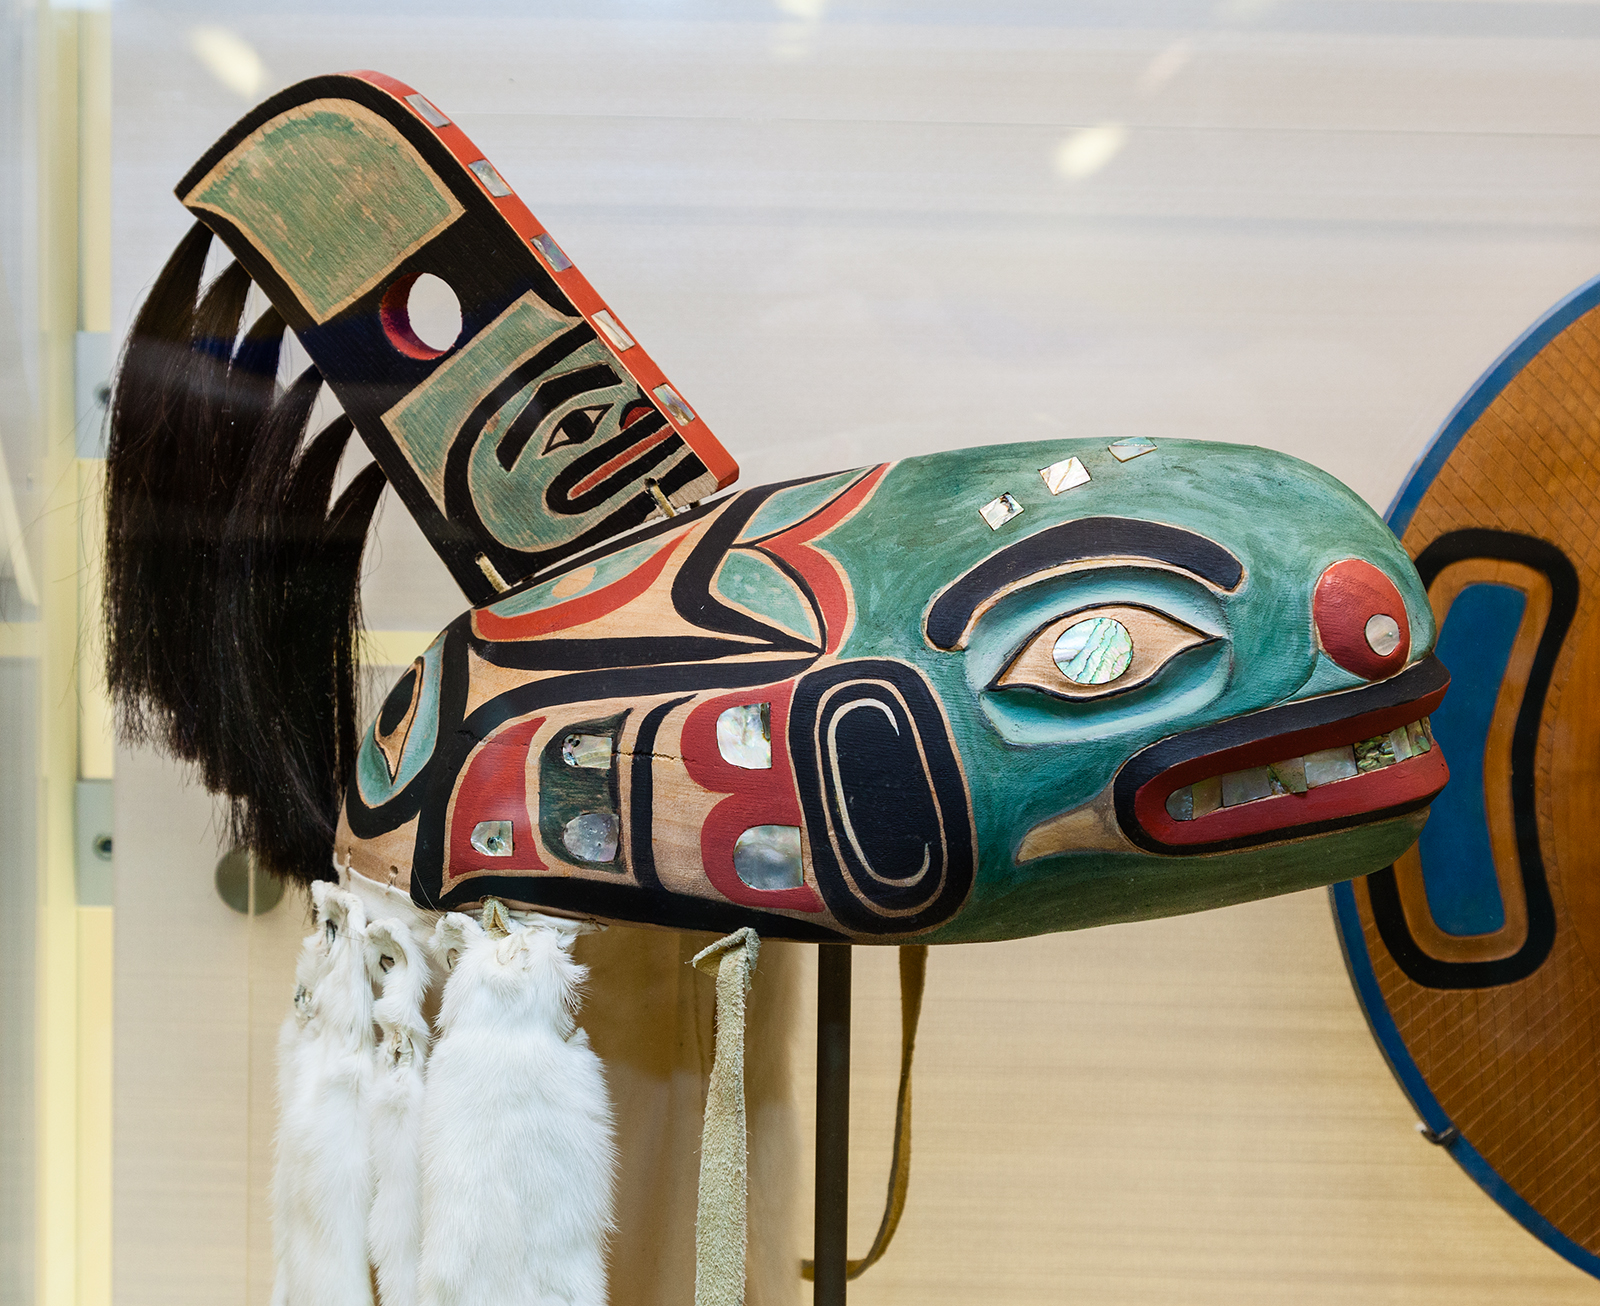 A replica of an original Tlingit, an Alaskan Native American tribe, Killer Whale hat, catalog number E433020, that is on display in Q?RIUS to help tell the story of the repatriation and the importance of clan hats to the Tlingit. The original hat, repatriated from the Smithsonian National Museum of Natural History, back to the clan in 2005.